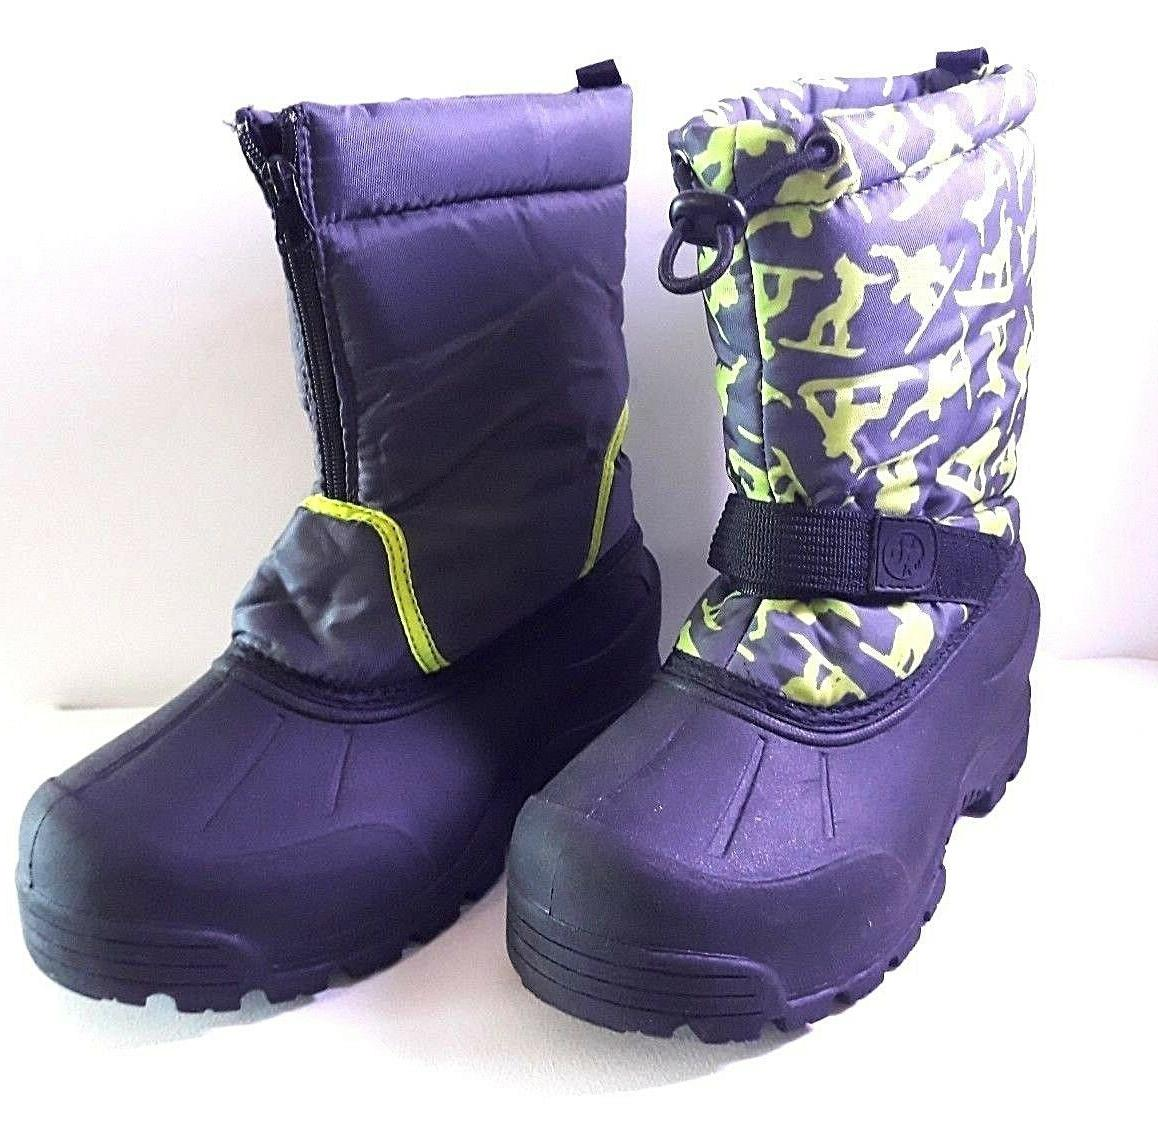 new woman waterproof snow boots